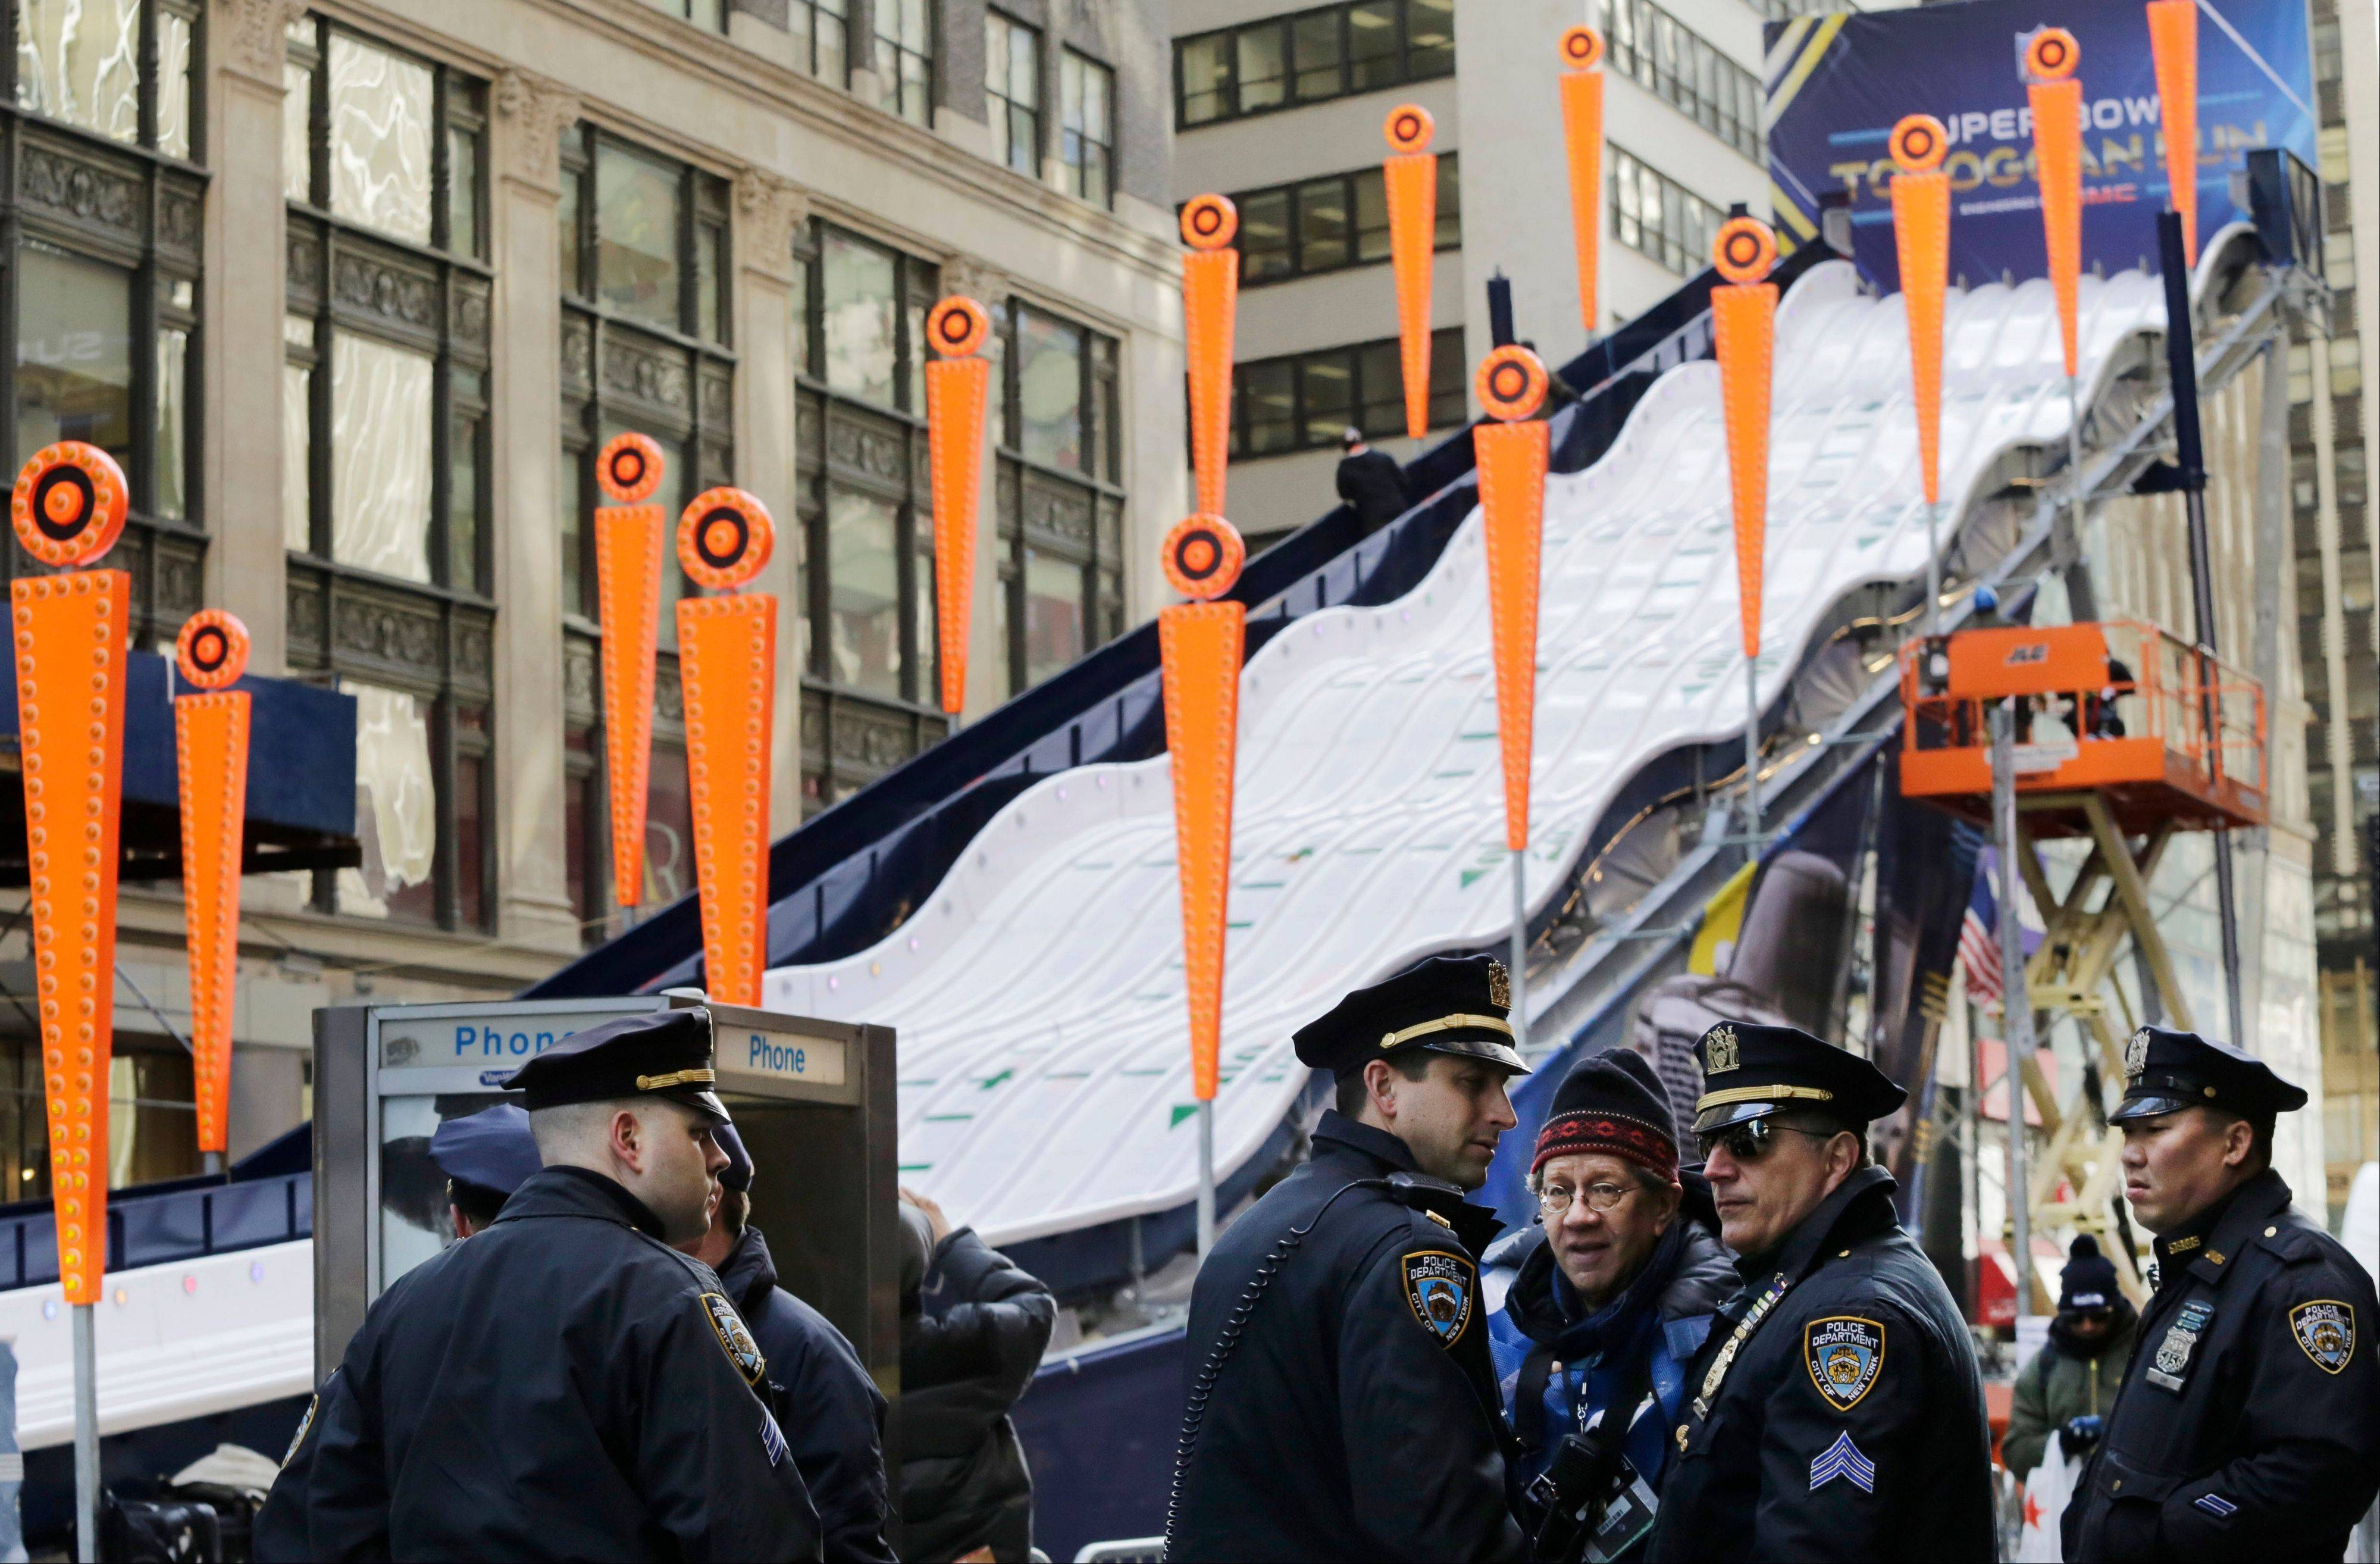 New York City police patrol next to a toboggan run Tuesday on what has been dubbed Super Bowl Boulevard on Times Square. Thirteen blocks of midtown Manhattan have been converted into a temporary festival space leading up to Sunday's Super Bowl.